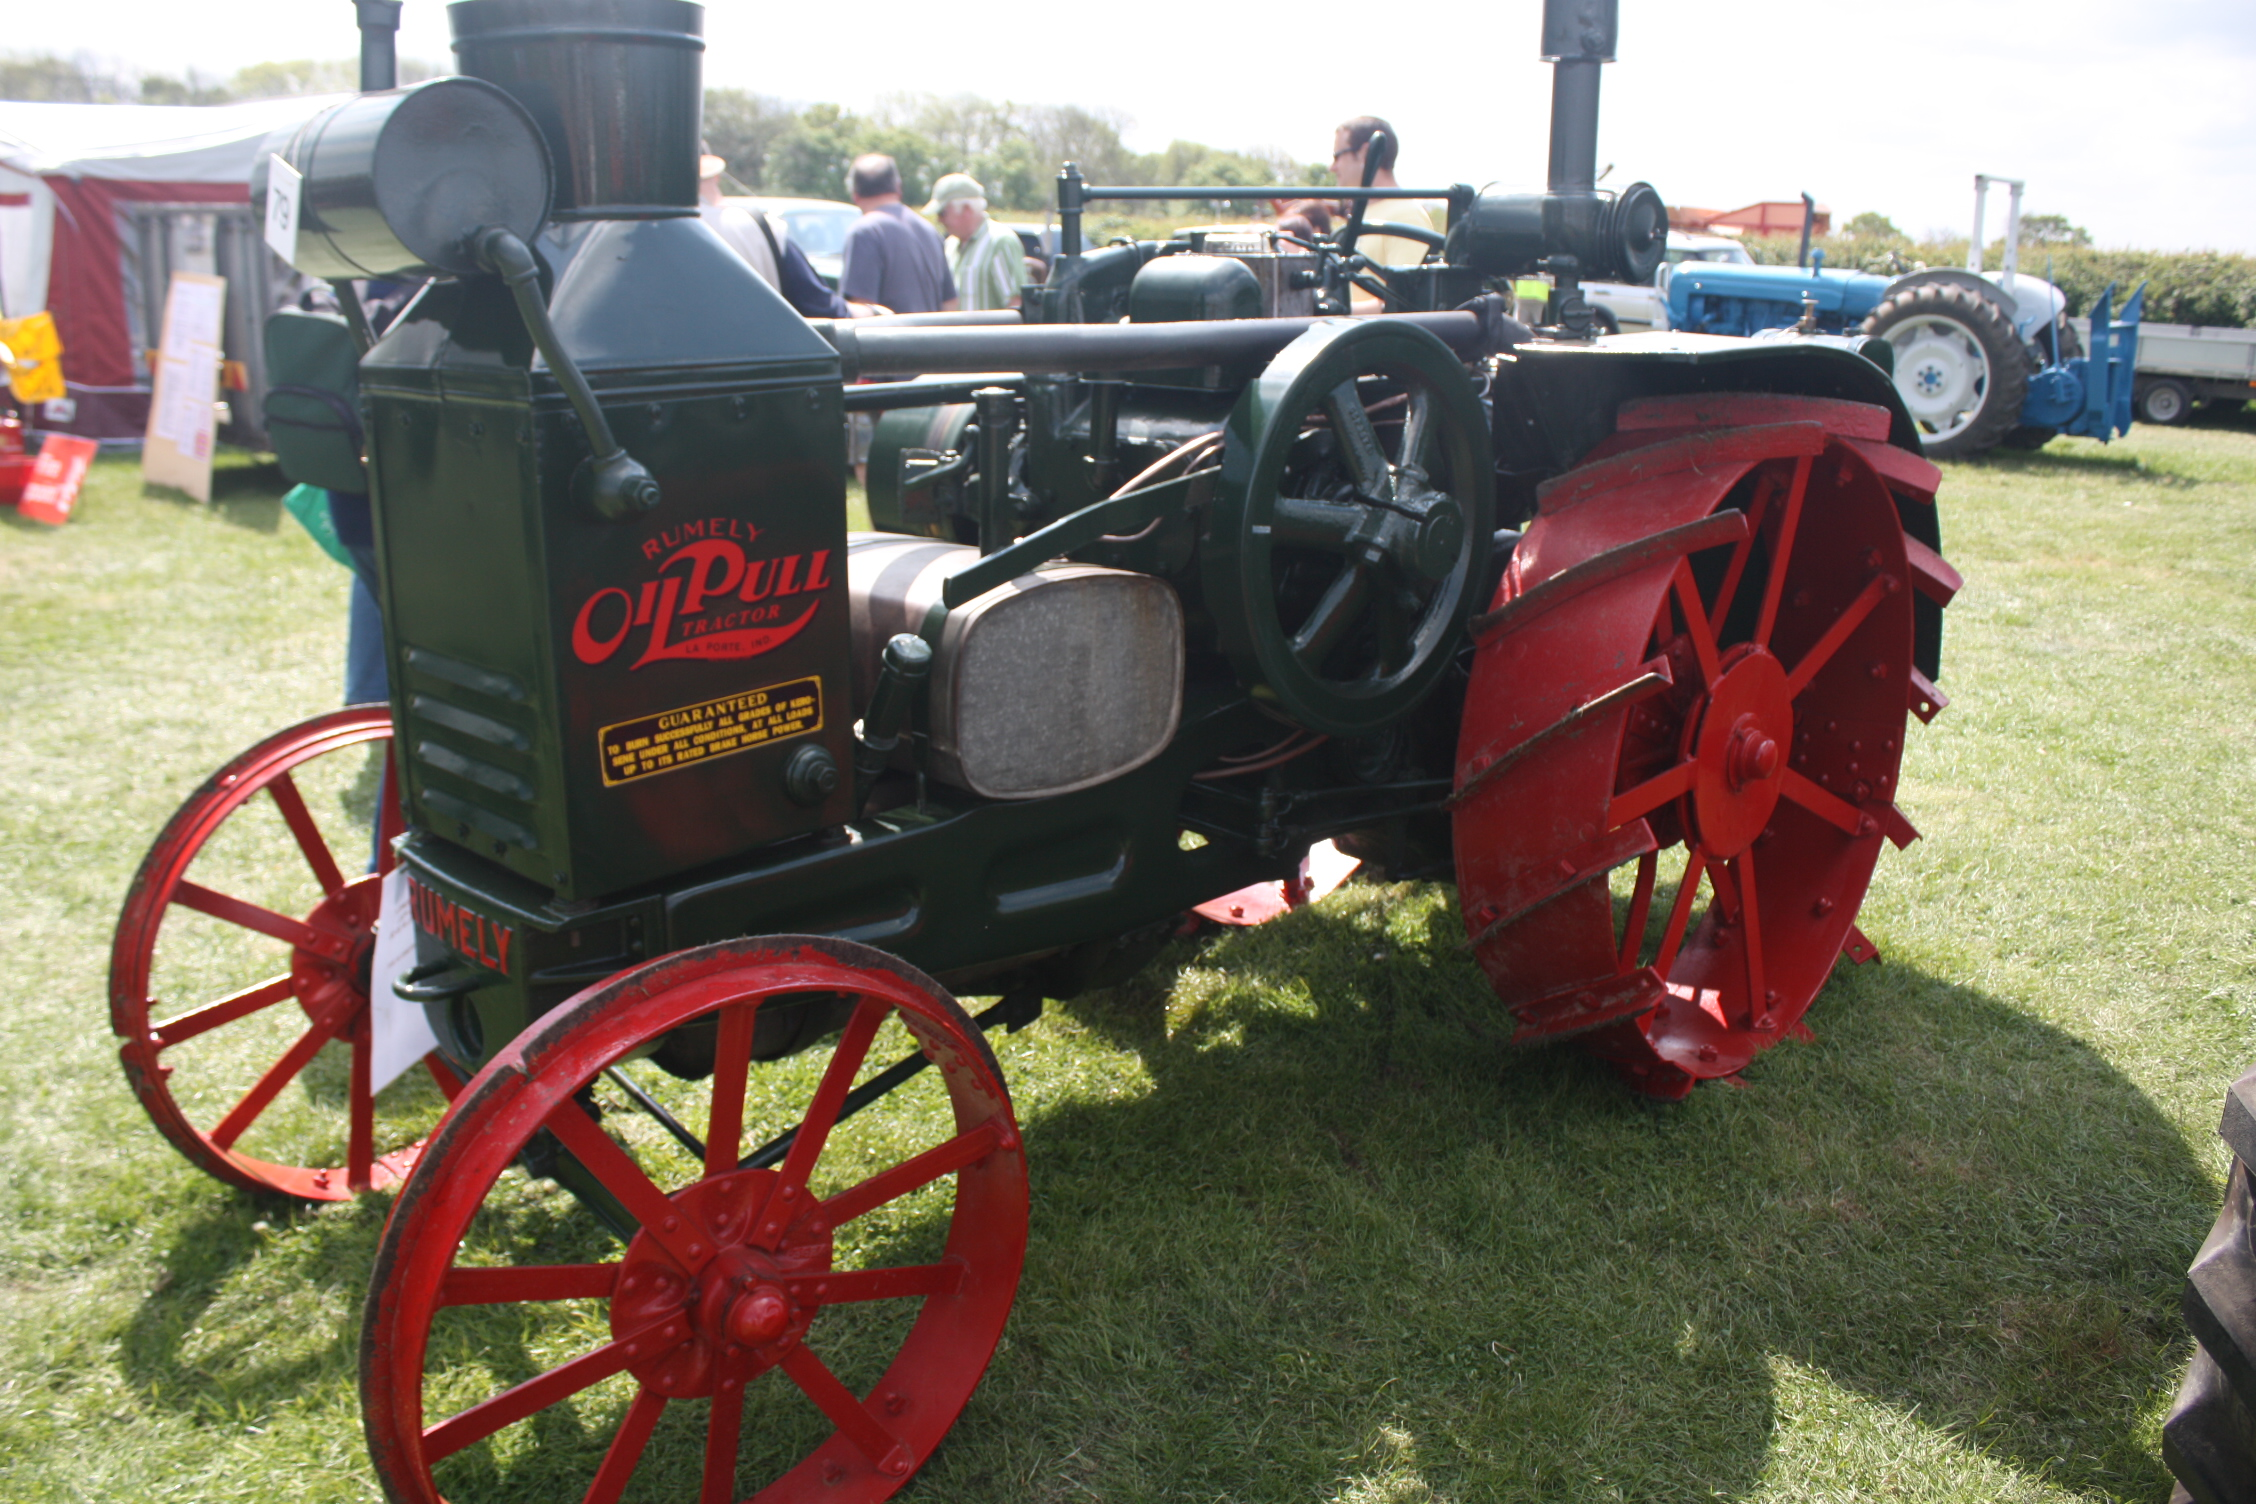 Rumely OilPull's were a line